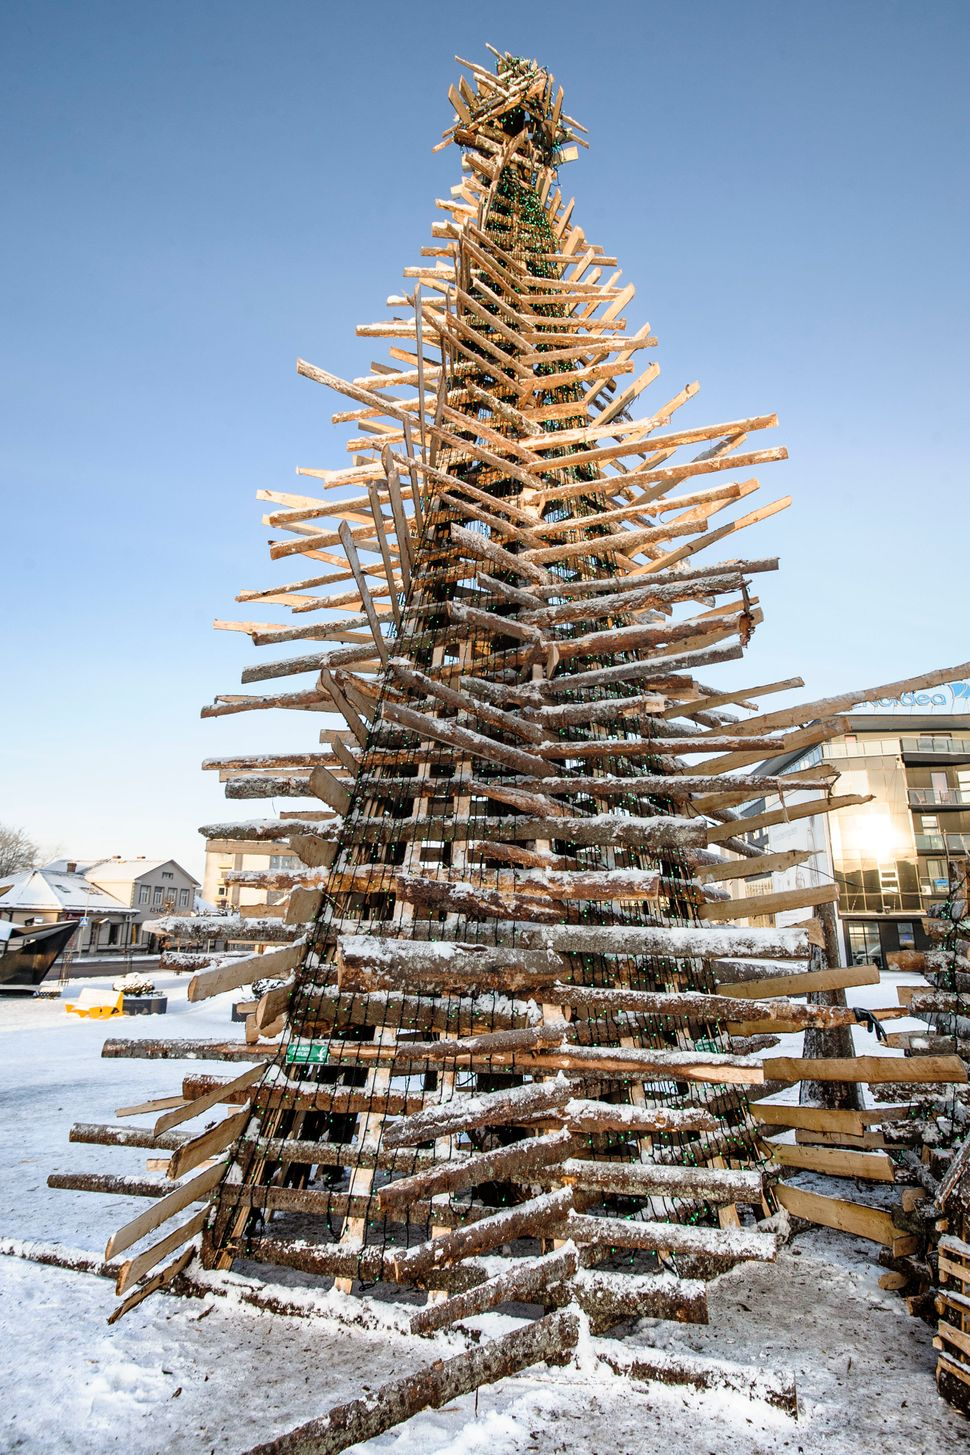 This Christmas tree built with waste wood is over 33 feet high. It is placed by local students at the city centre of Rakvere,